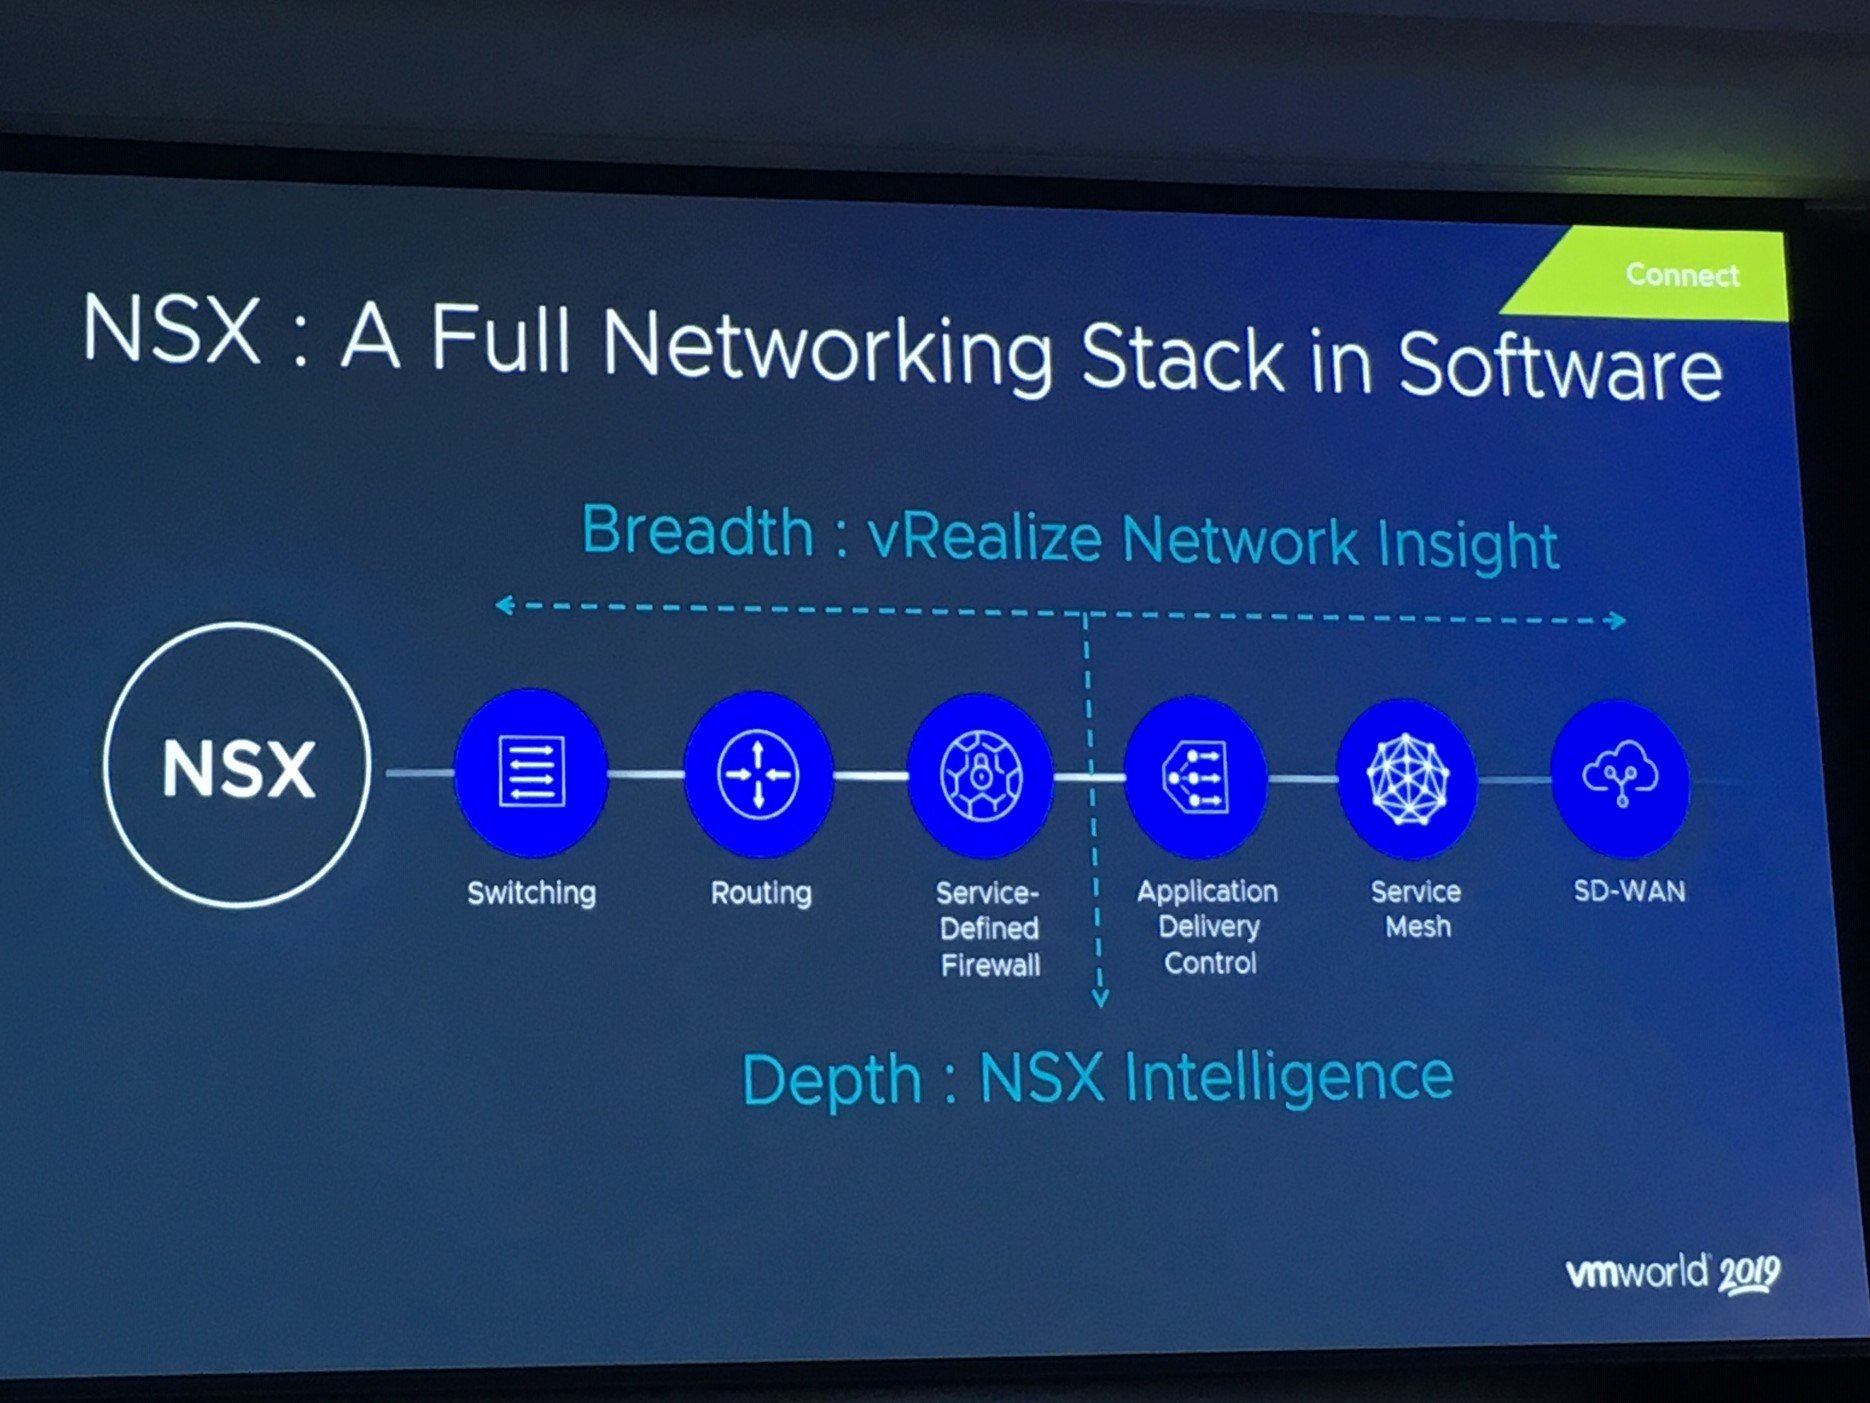 VMworld 2019: A Network Perspective